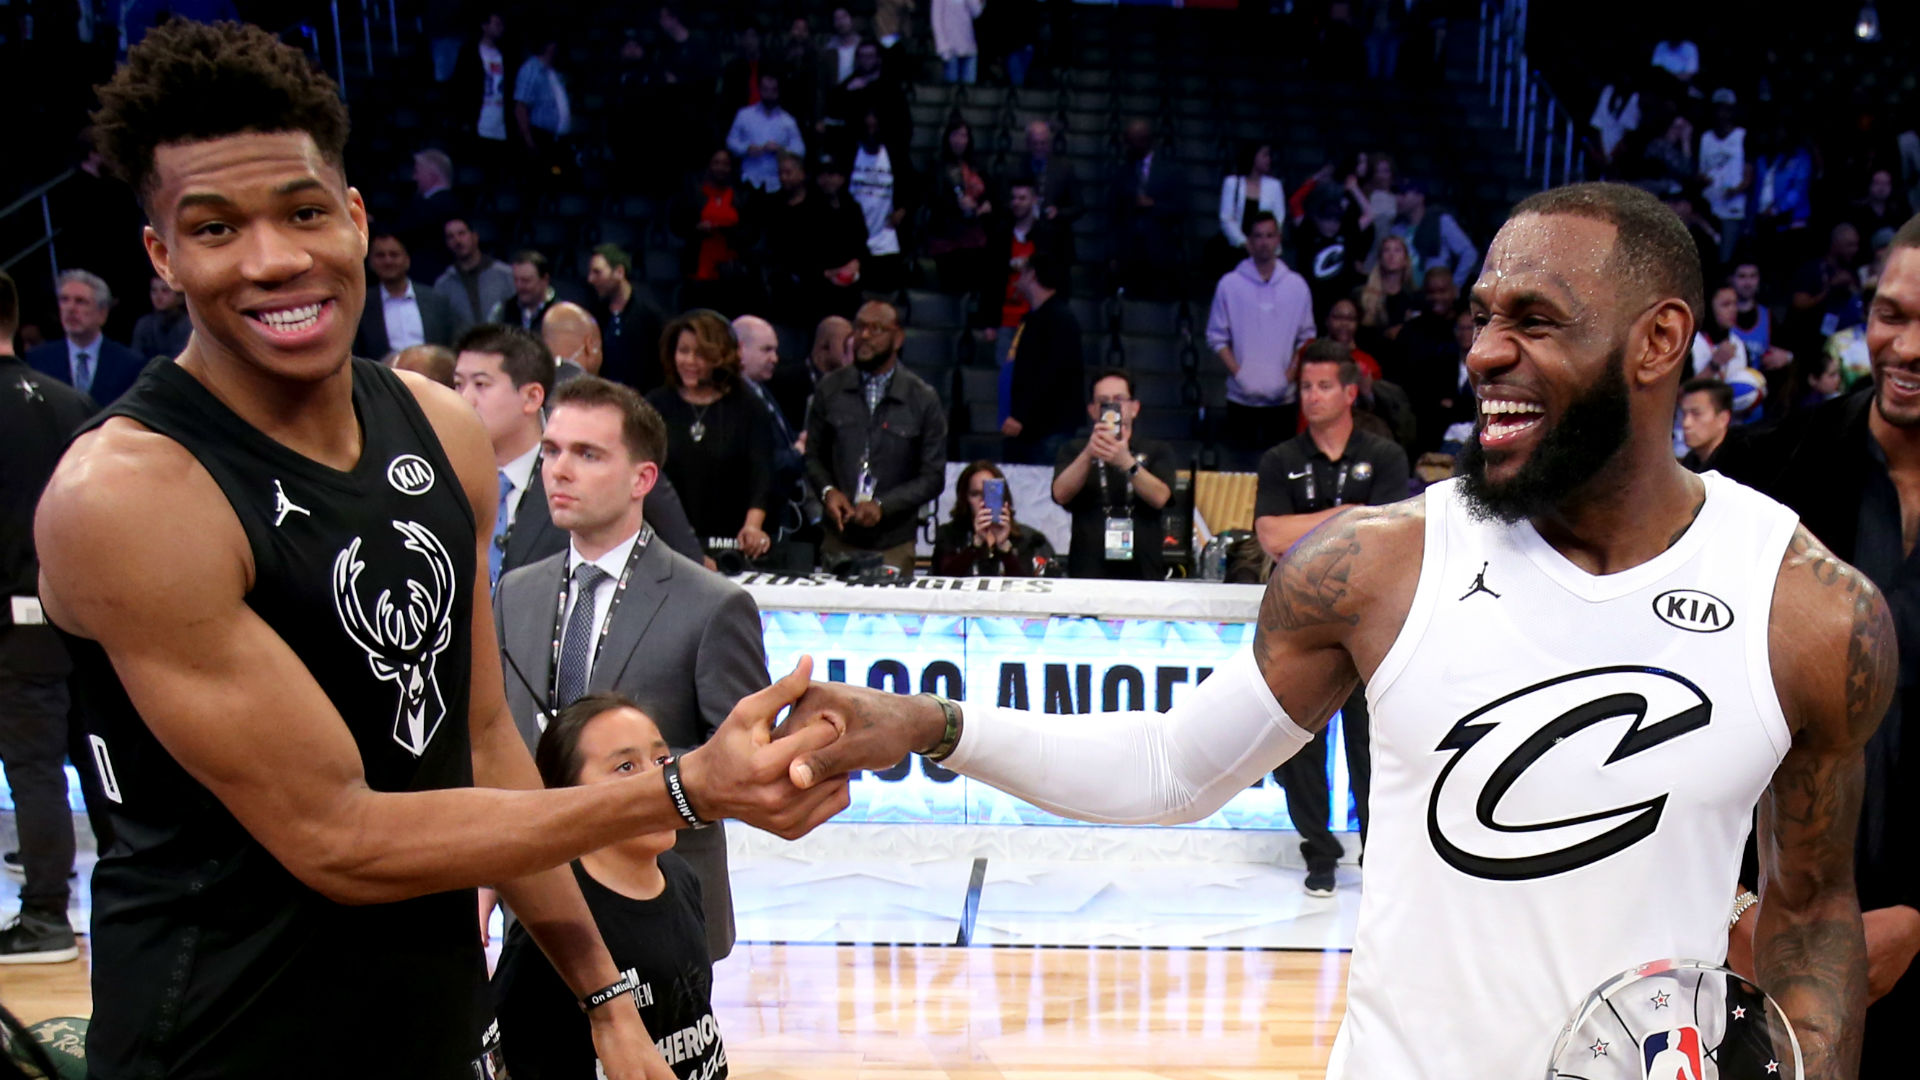 Nba All Star Game 2019 How To Watch The Inaugural Nba All